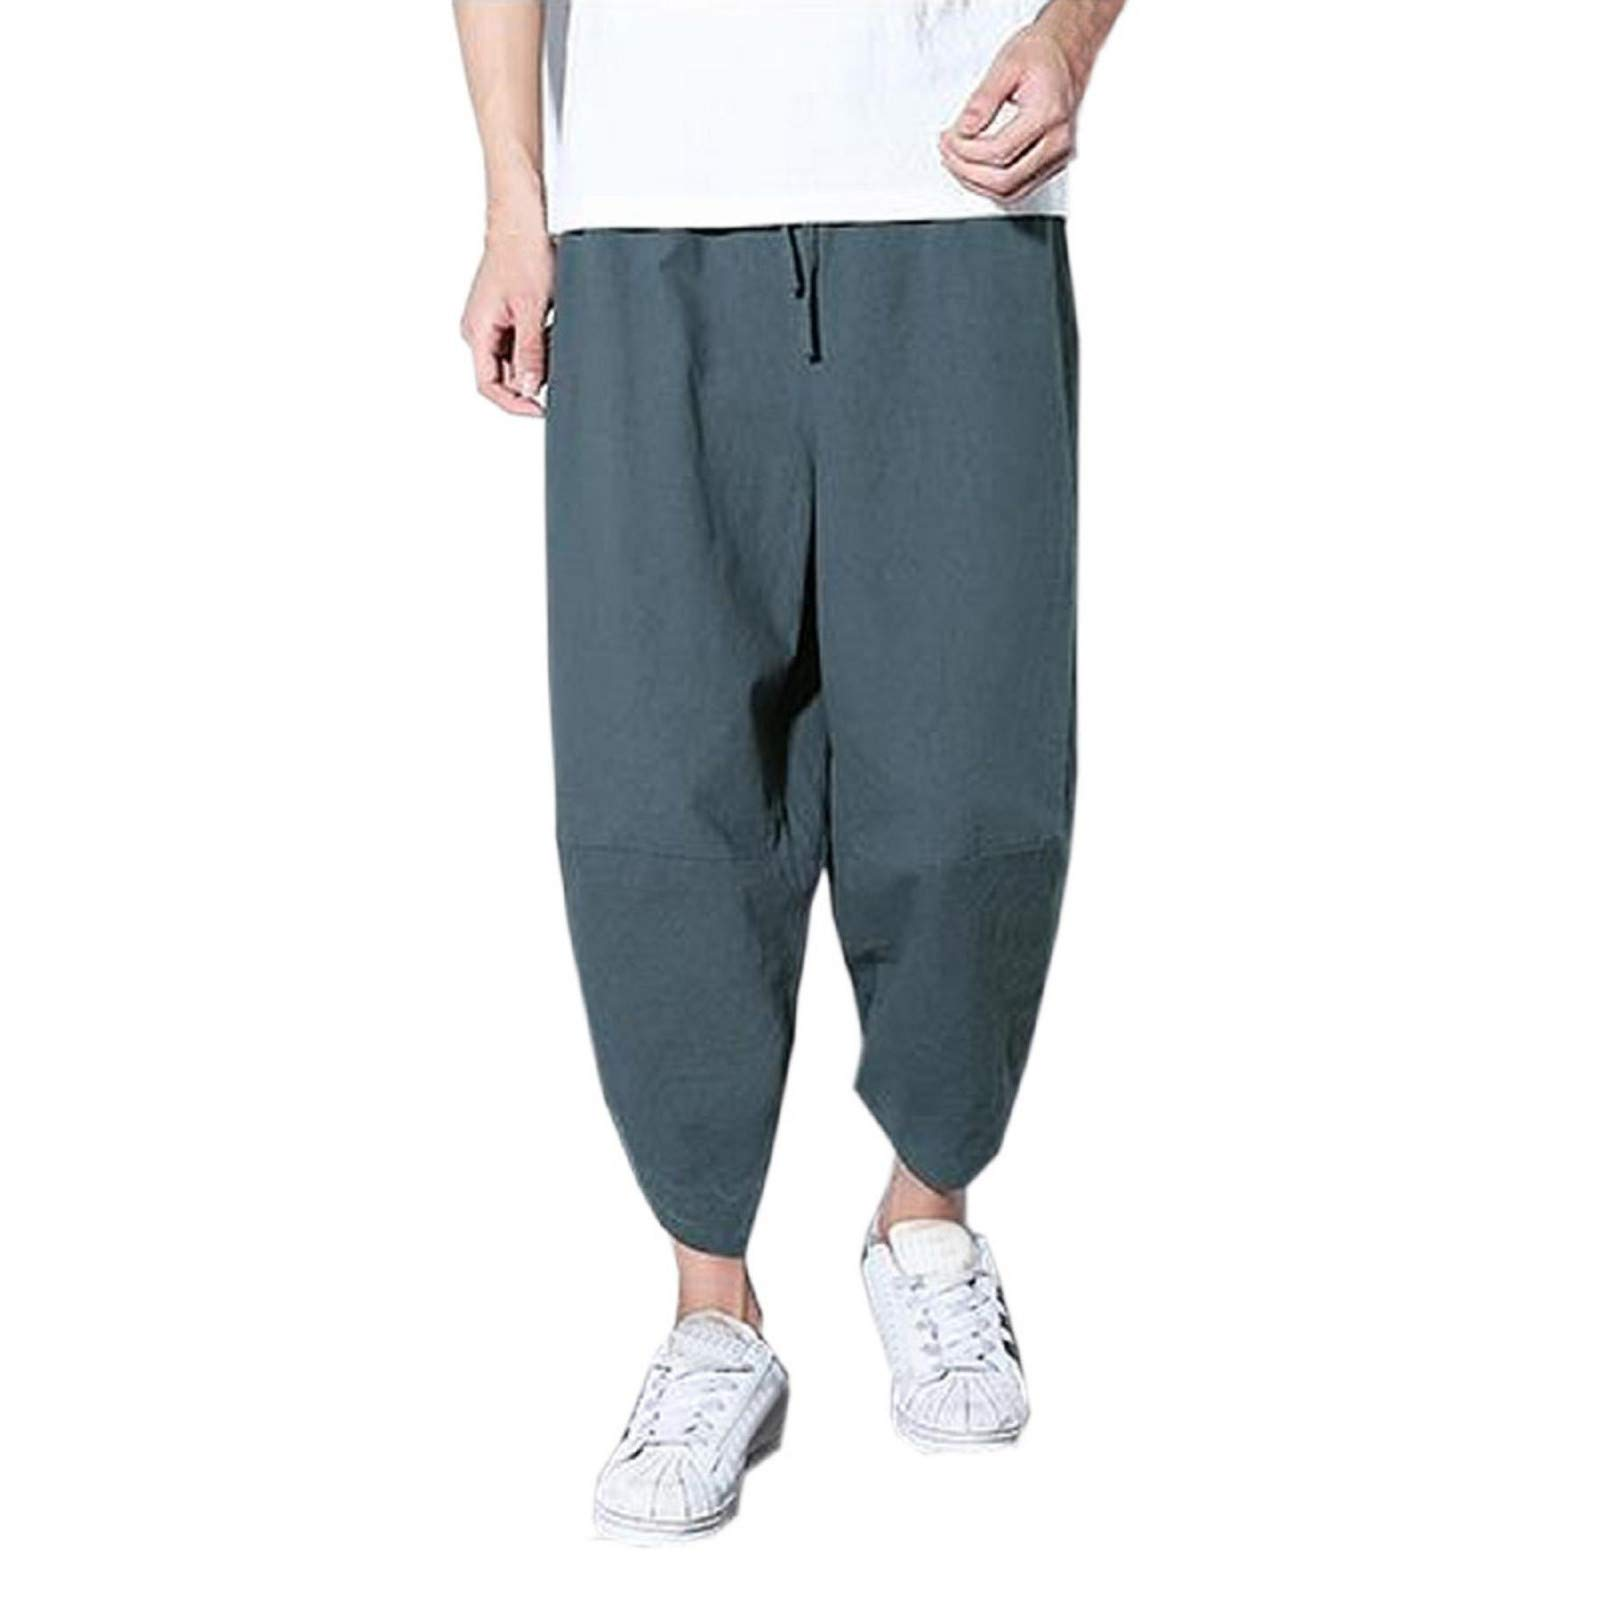 XINHUXIN Men's Elastic Waist Wide Leg Cotton Harem Baggy Pants Patchwork Linen Capri Trousers Available M-3XL Gray